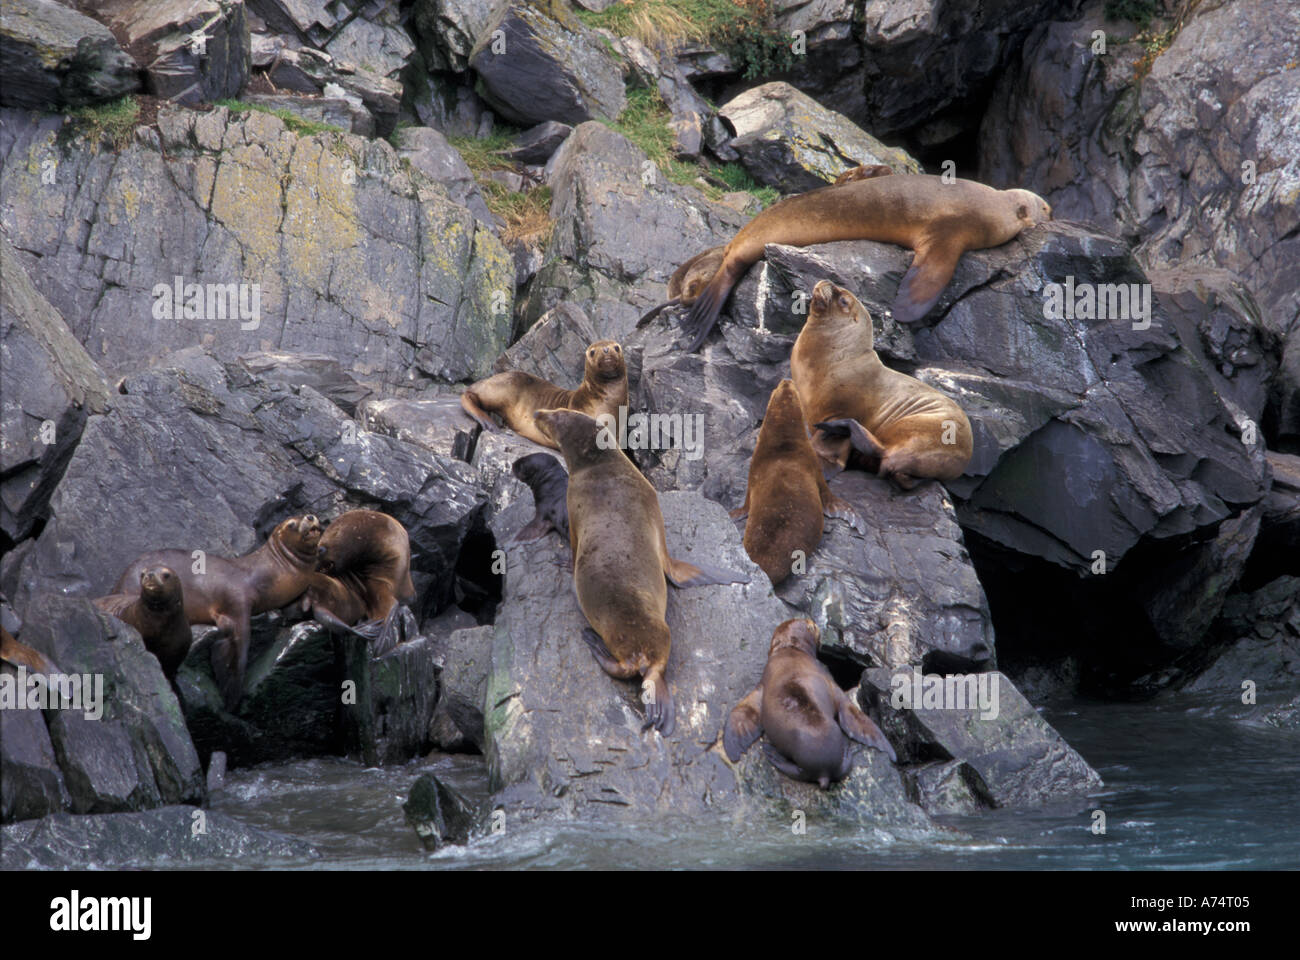 Chile, Magellanes. Sea lion colony at Parque Nacional Bernardo O'Higgins. - Stock Image